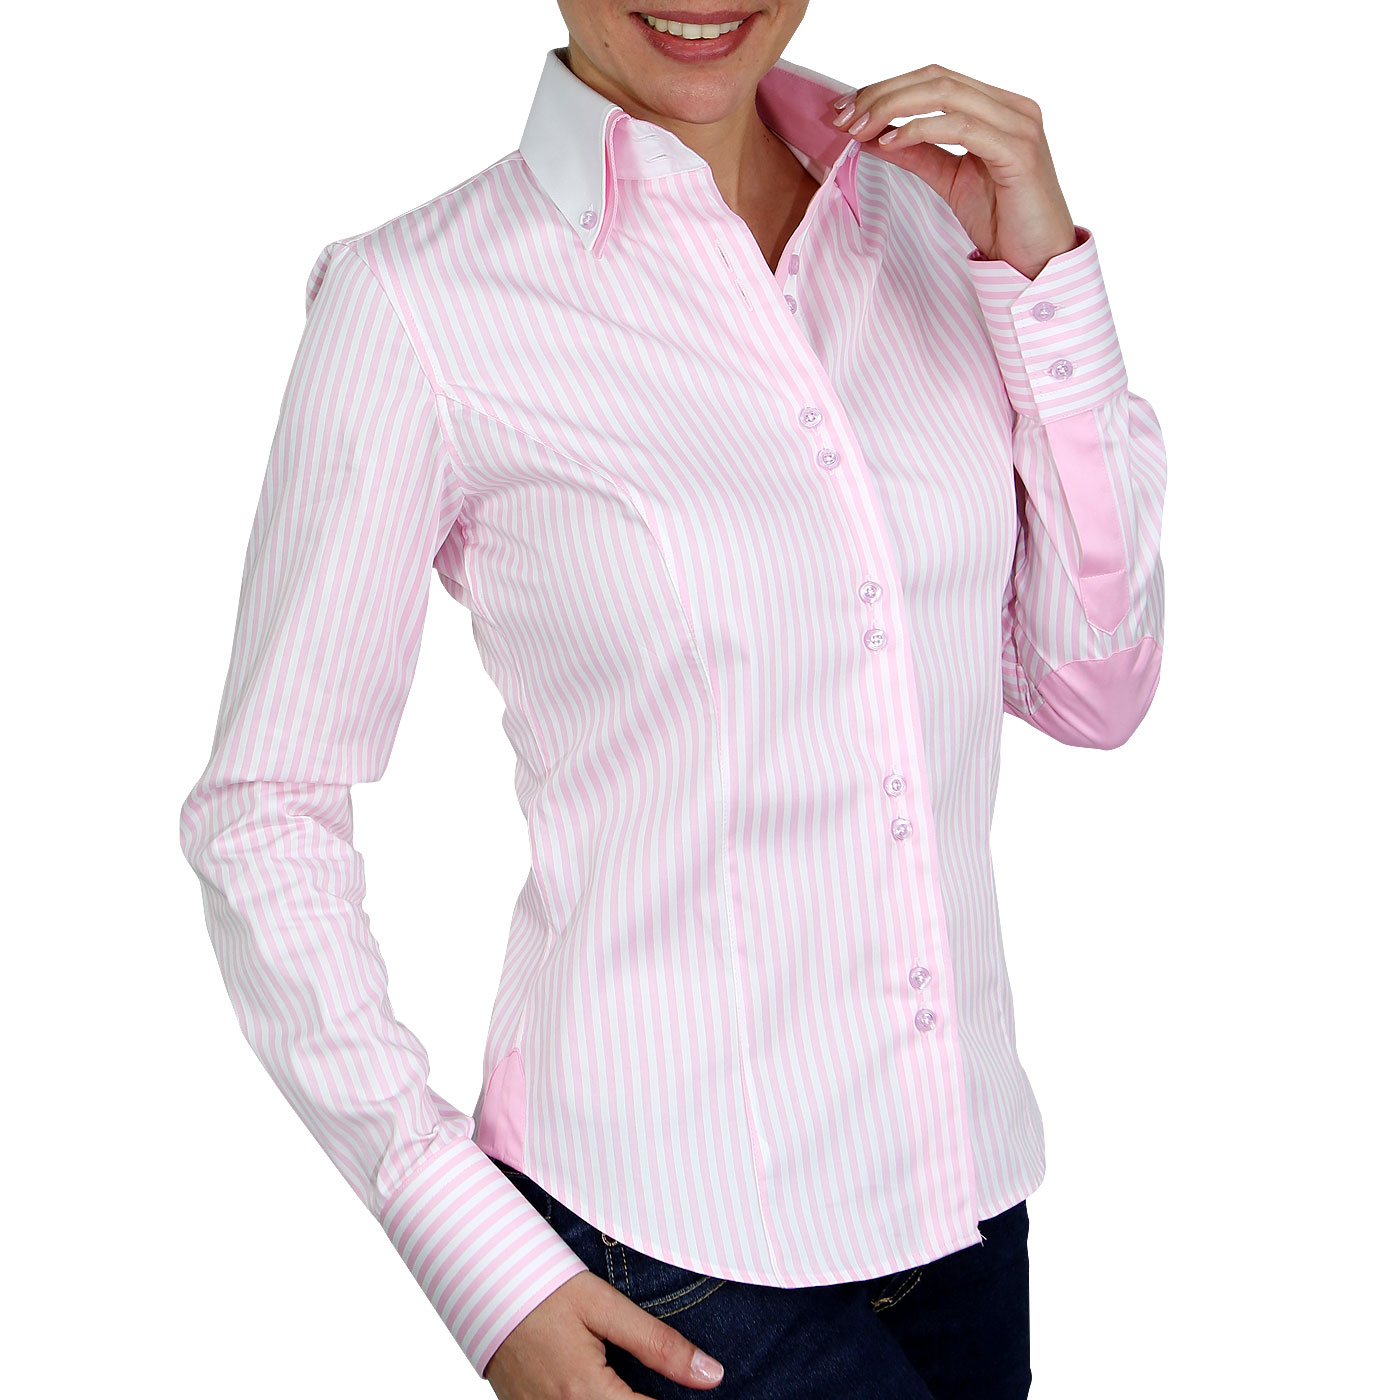 Women's shirt, the fashionable item in the air